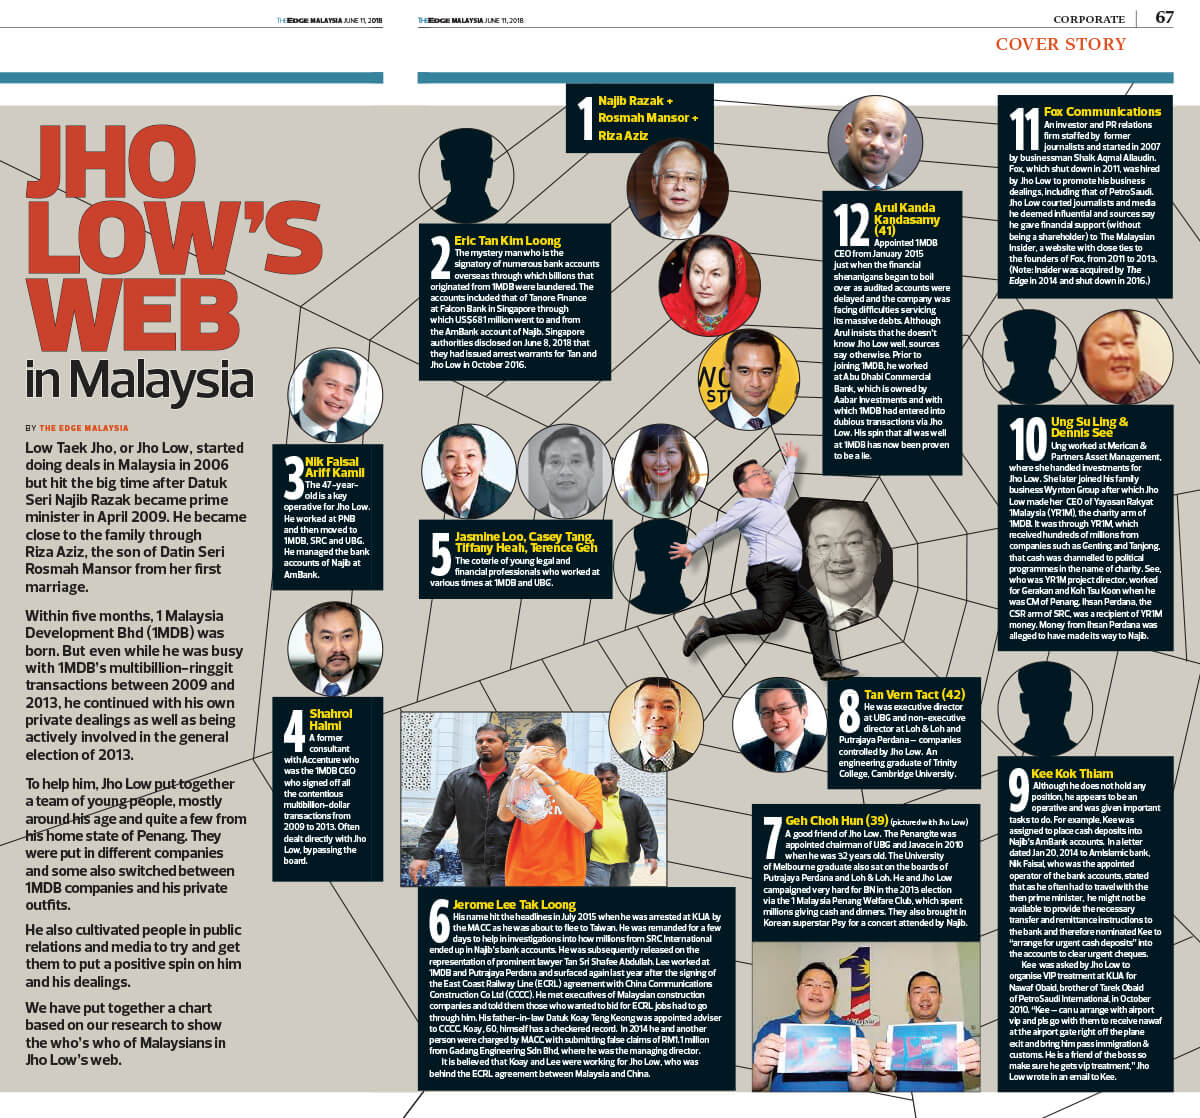 Jho lows web in malaysia i am a malaysian click image to enlarge fandeluxe Image collections